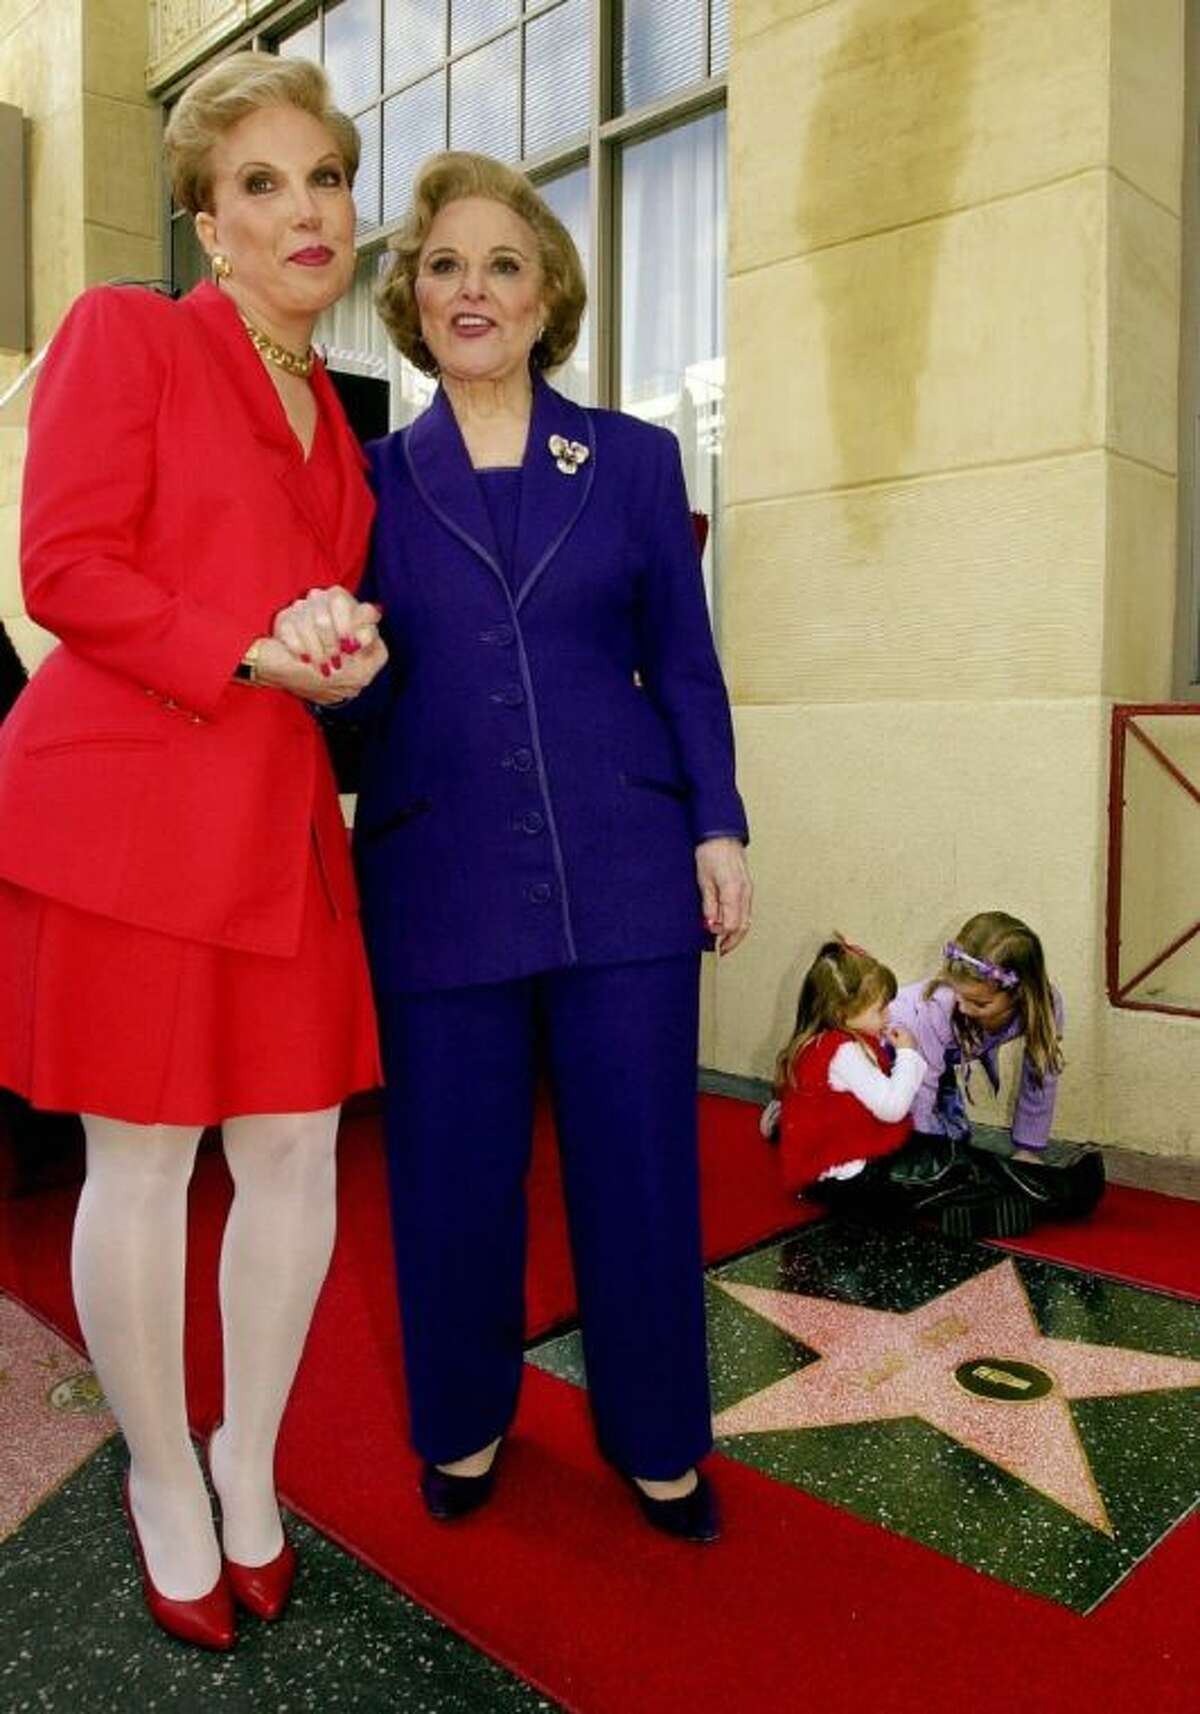 """In this Feb. 14, 2001 file photo, Pauline Friedman Phillips, right, the nationally-syndicated advice columnist best known as """"Dear Abby,"""" and her daughter Jeanne Phillips, pose after the dedication of a Dear Abby star on the Hollywood Walk of Fame in Los Angeles. Phillips, who had Alzheimer's disease, died Wednesday."""